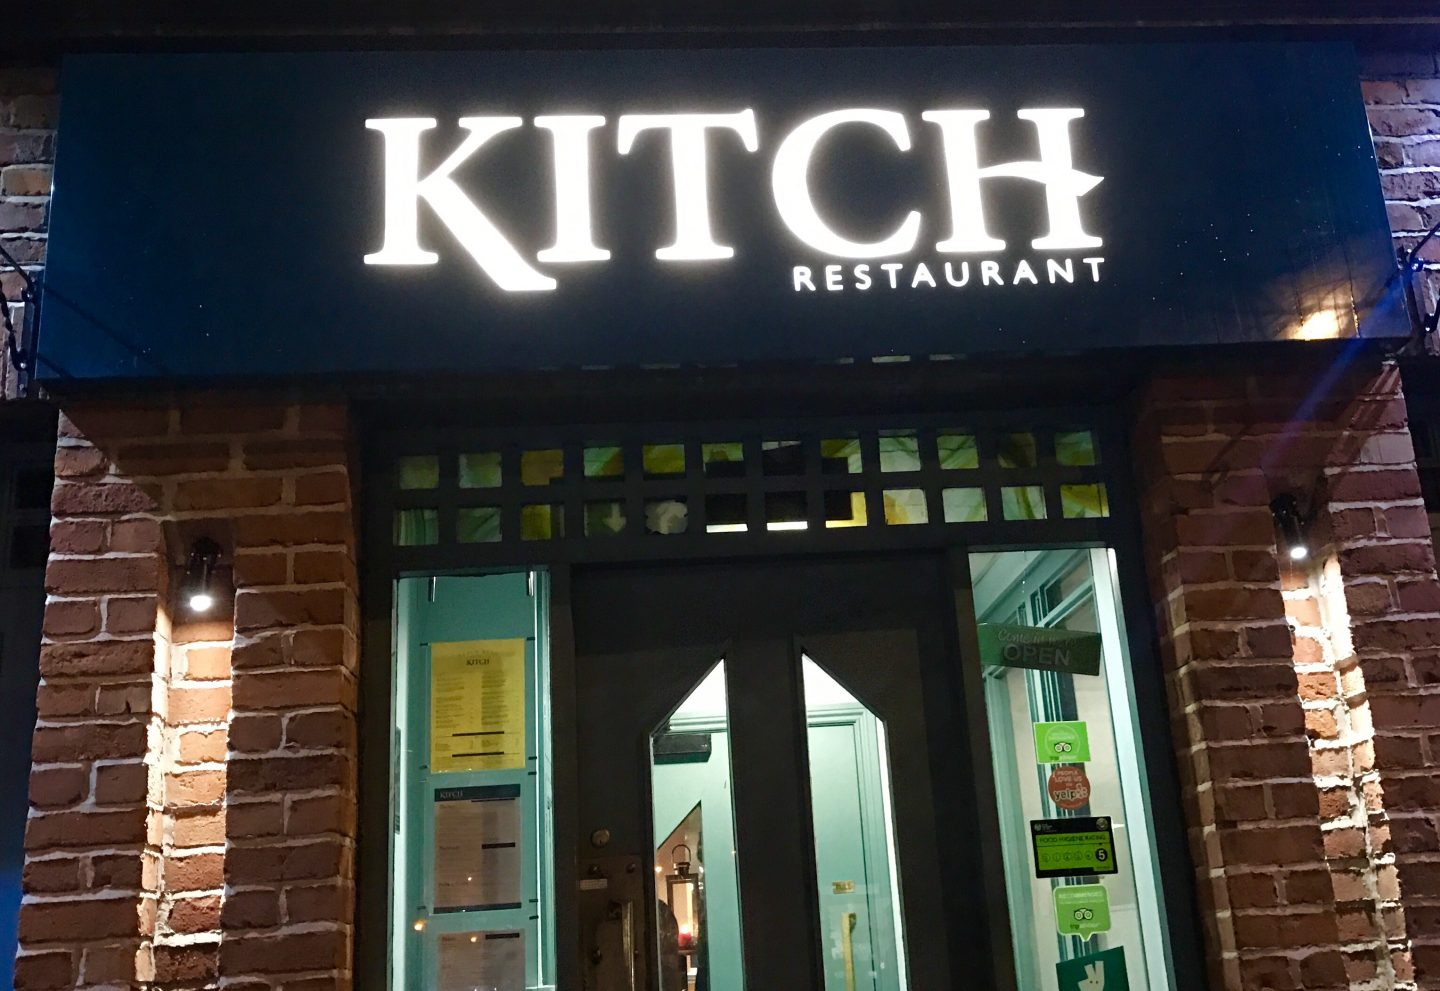 Calling all foodies – Kitch